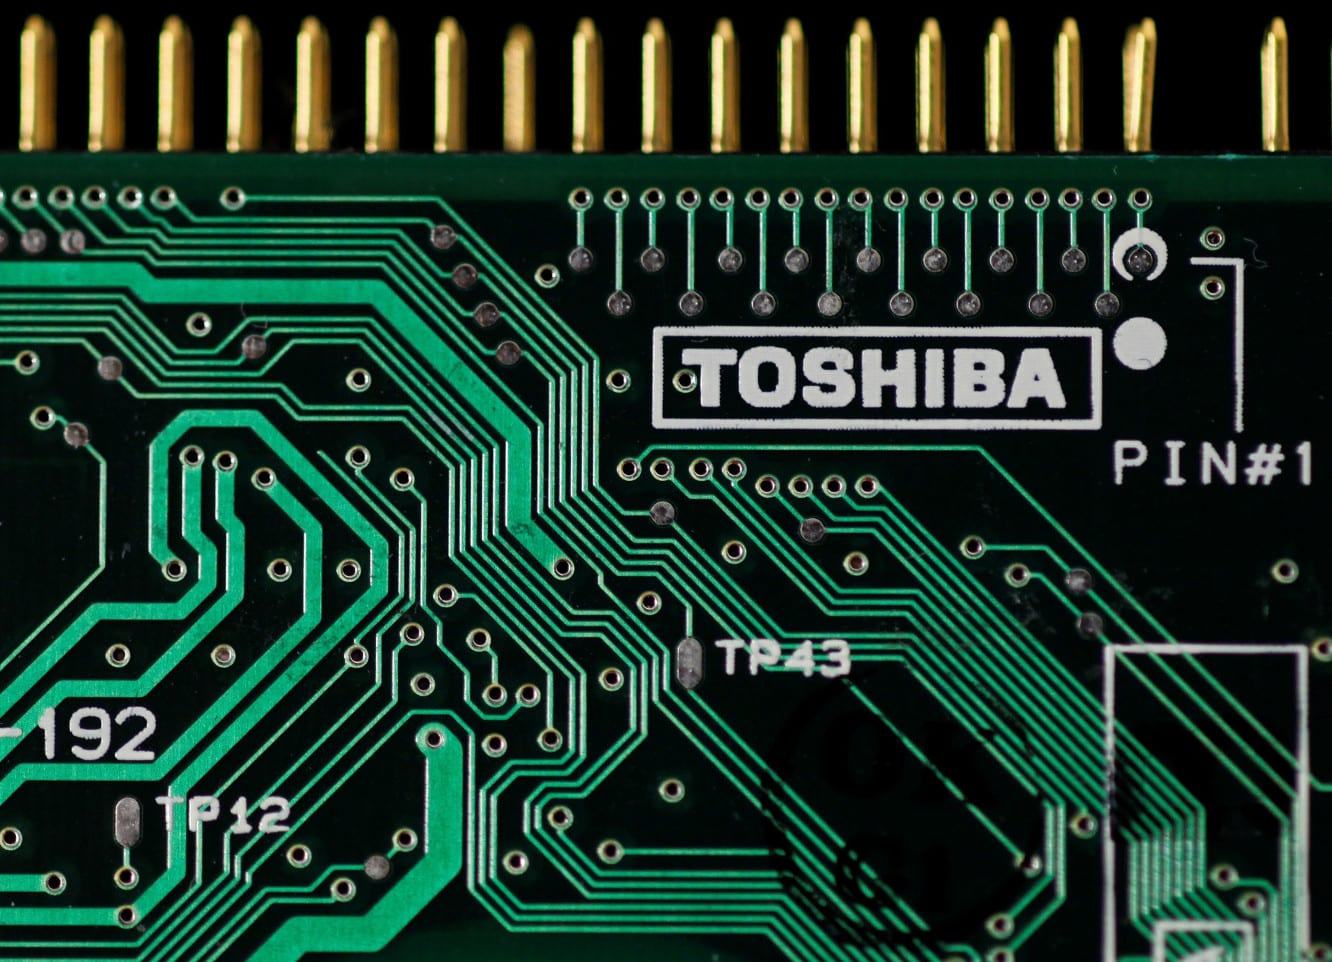 Toshiba nears deal to sell chip business to group that includes Apple